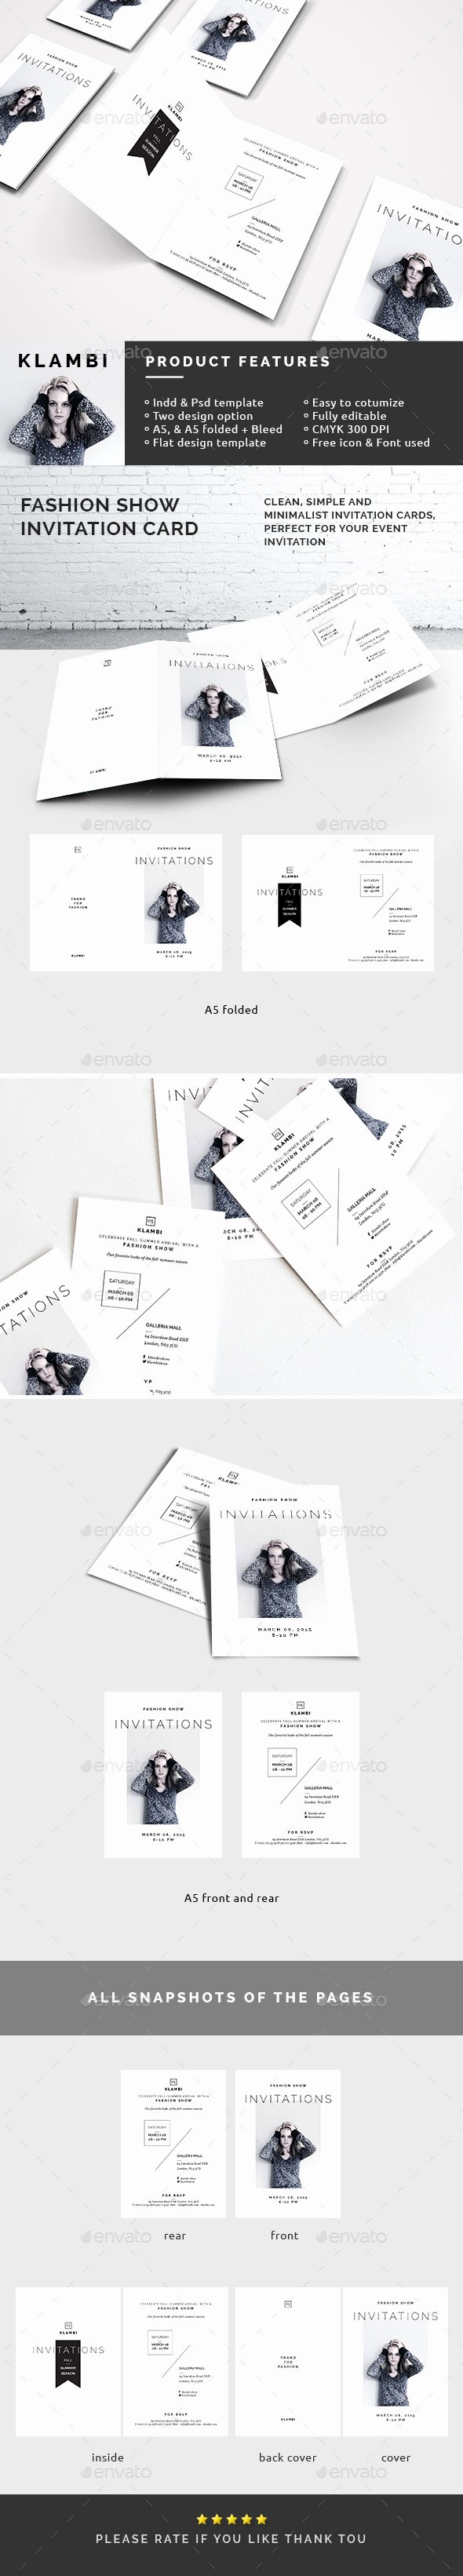 Fashion Show Invitations Templates Best Of Fashion Show Invitation Template by Boxkayu